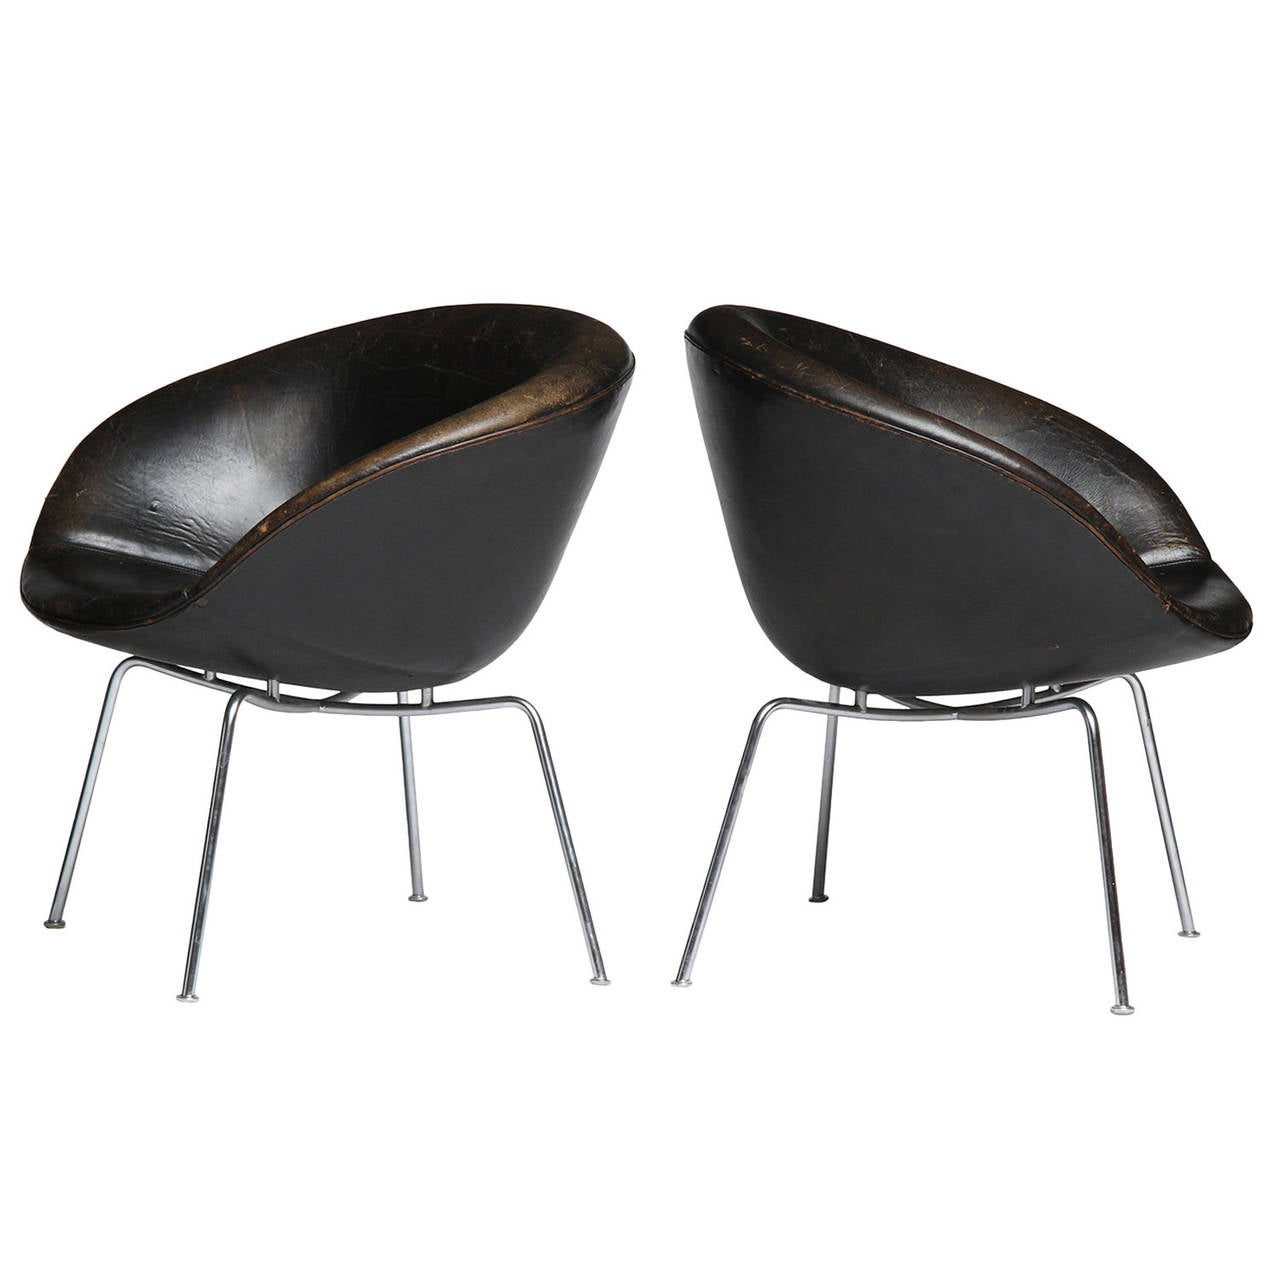 wheelchair with pot chair cover rentals des moines by arne jacobsen for sale at 1stdibs